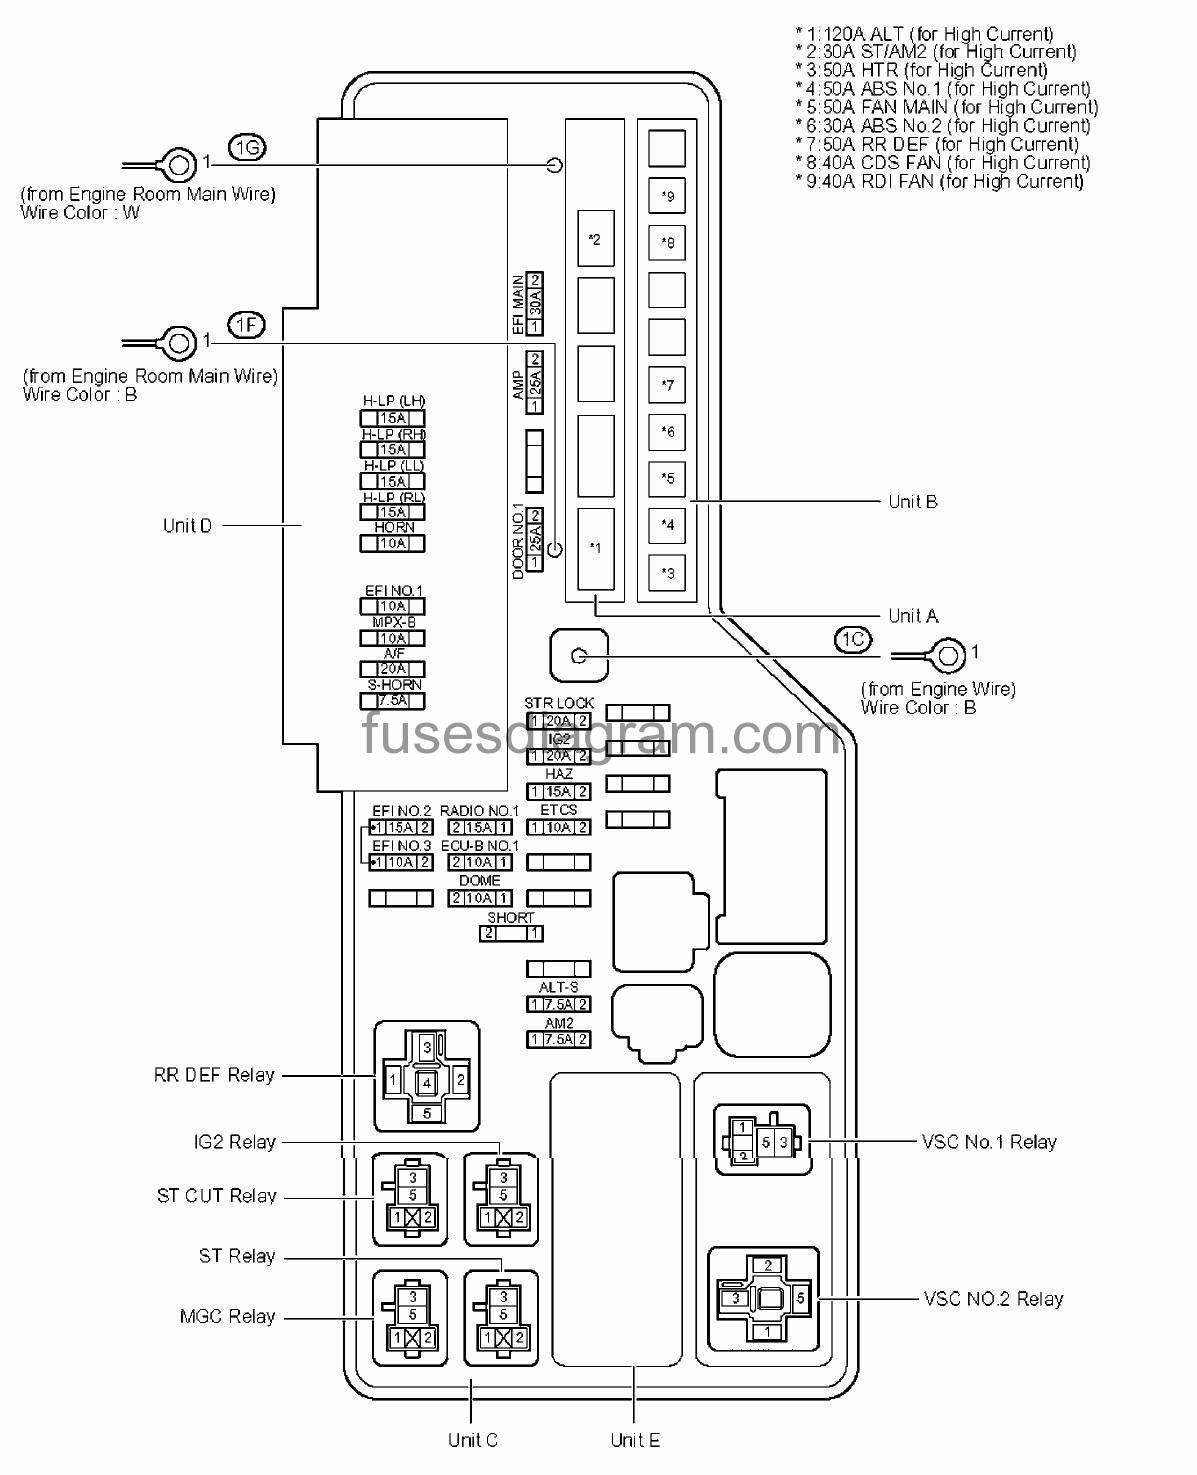 hight resolution of 91 toyota camry wiring system best part of wiring diagramtoyota camry wiring system fuse box